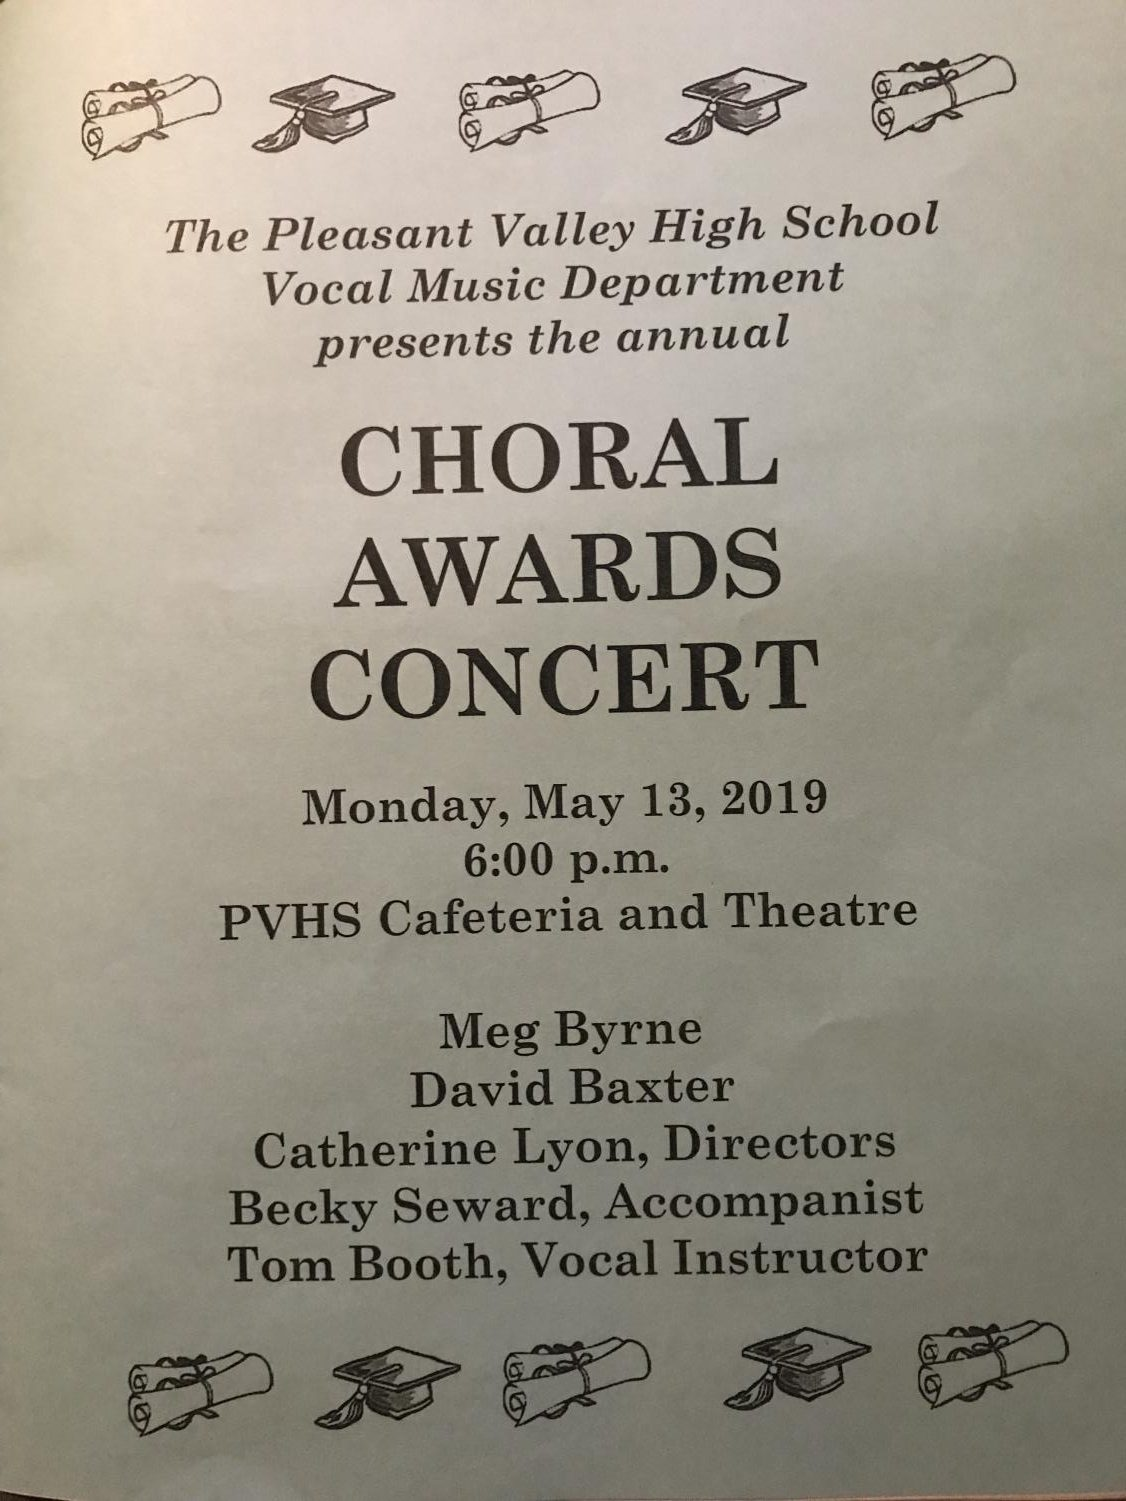 Program for the 2019 Choral Awards Concert on May 13.